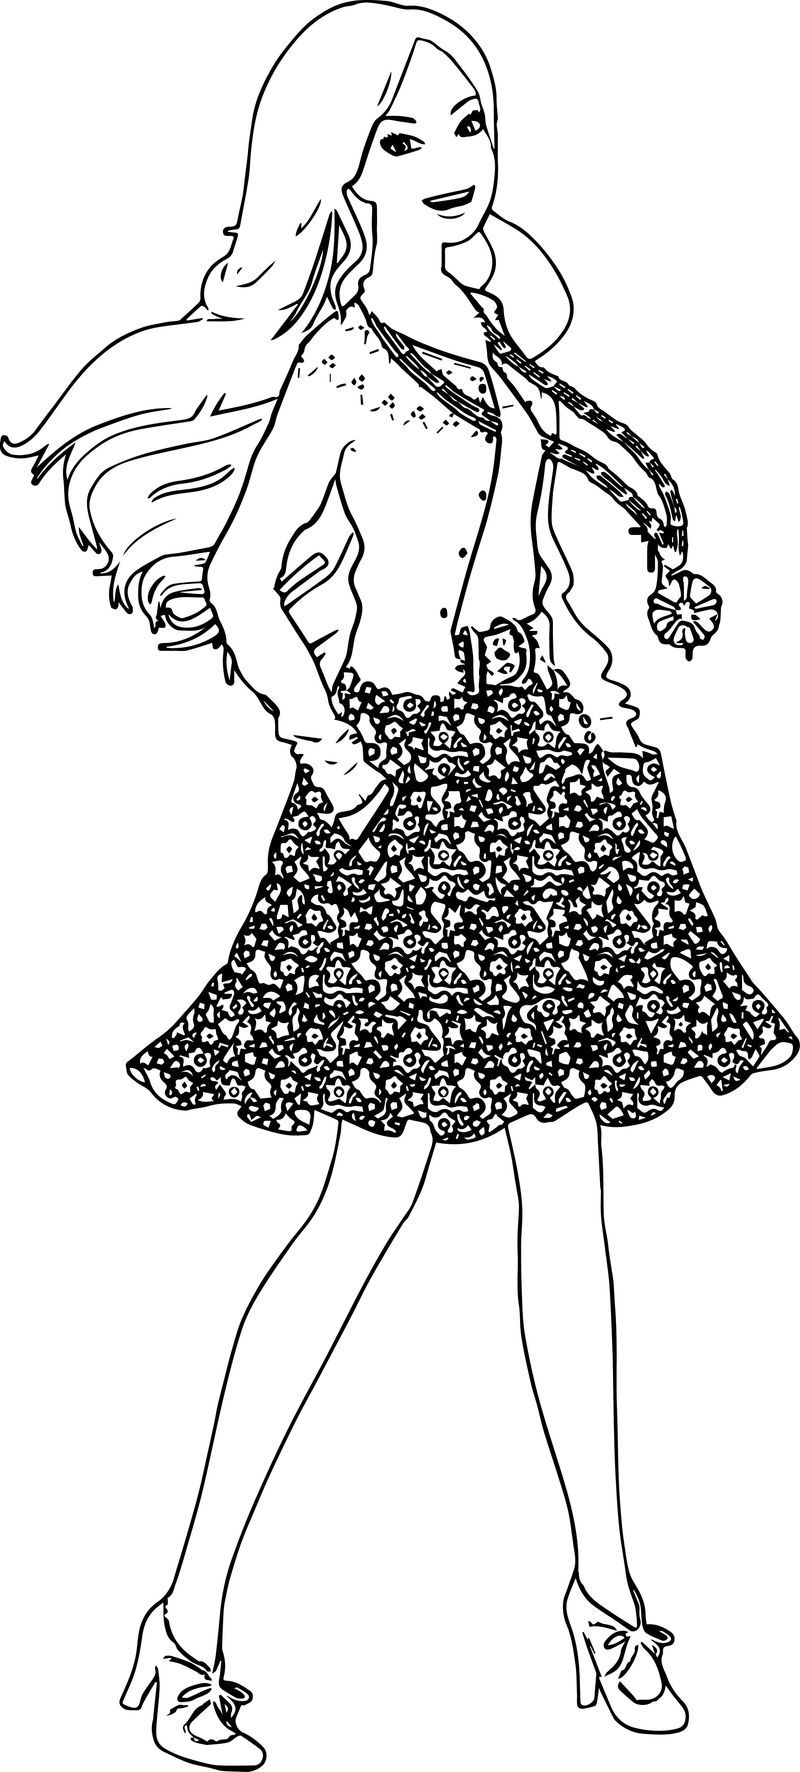 Barbie Coloring Pages Barbie Happy Coloring Page